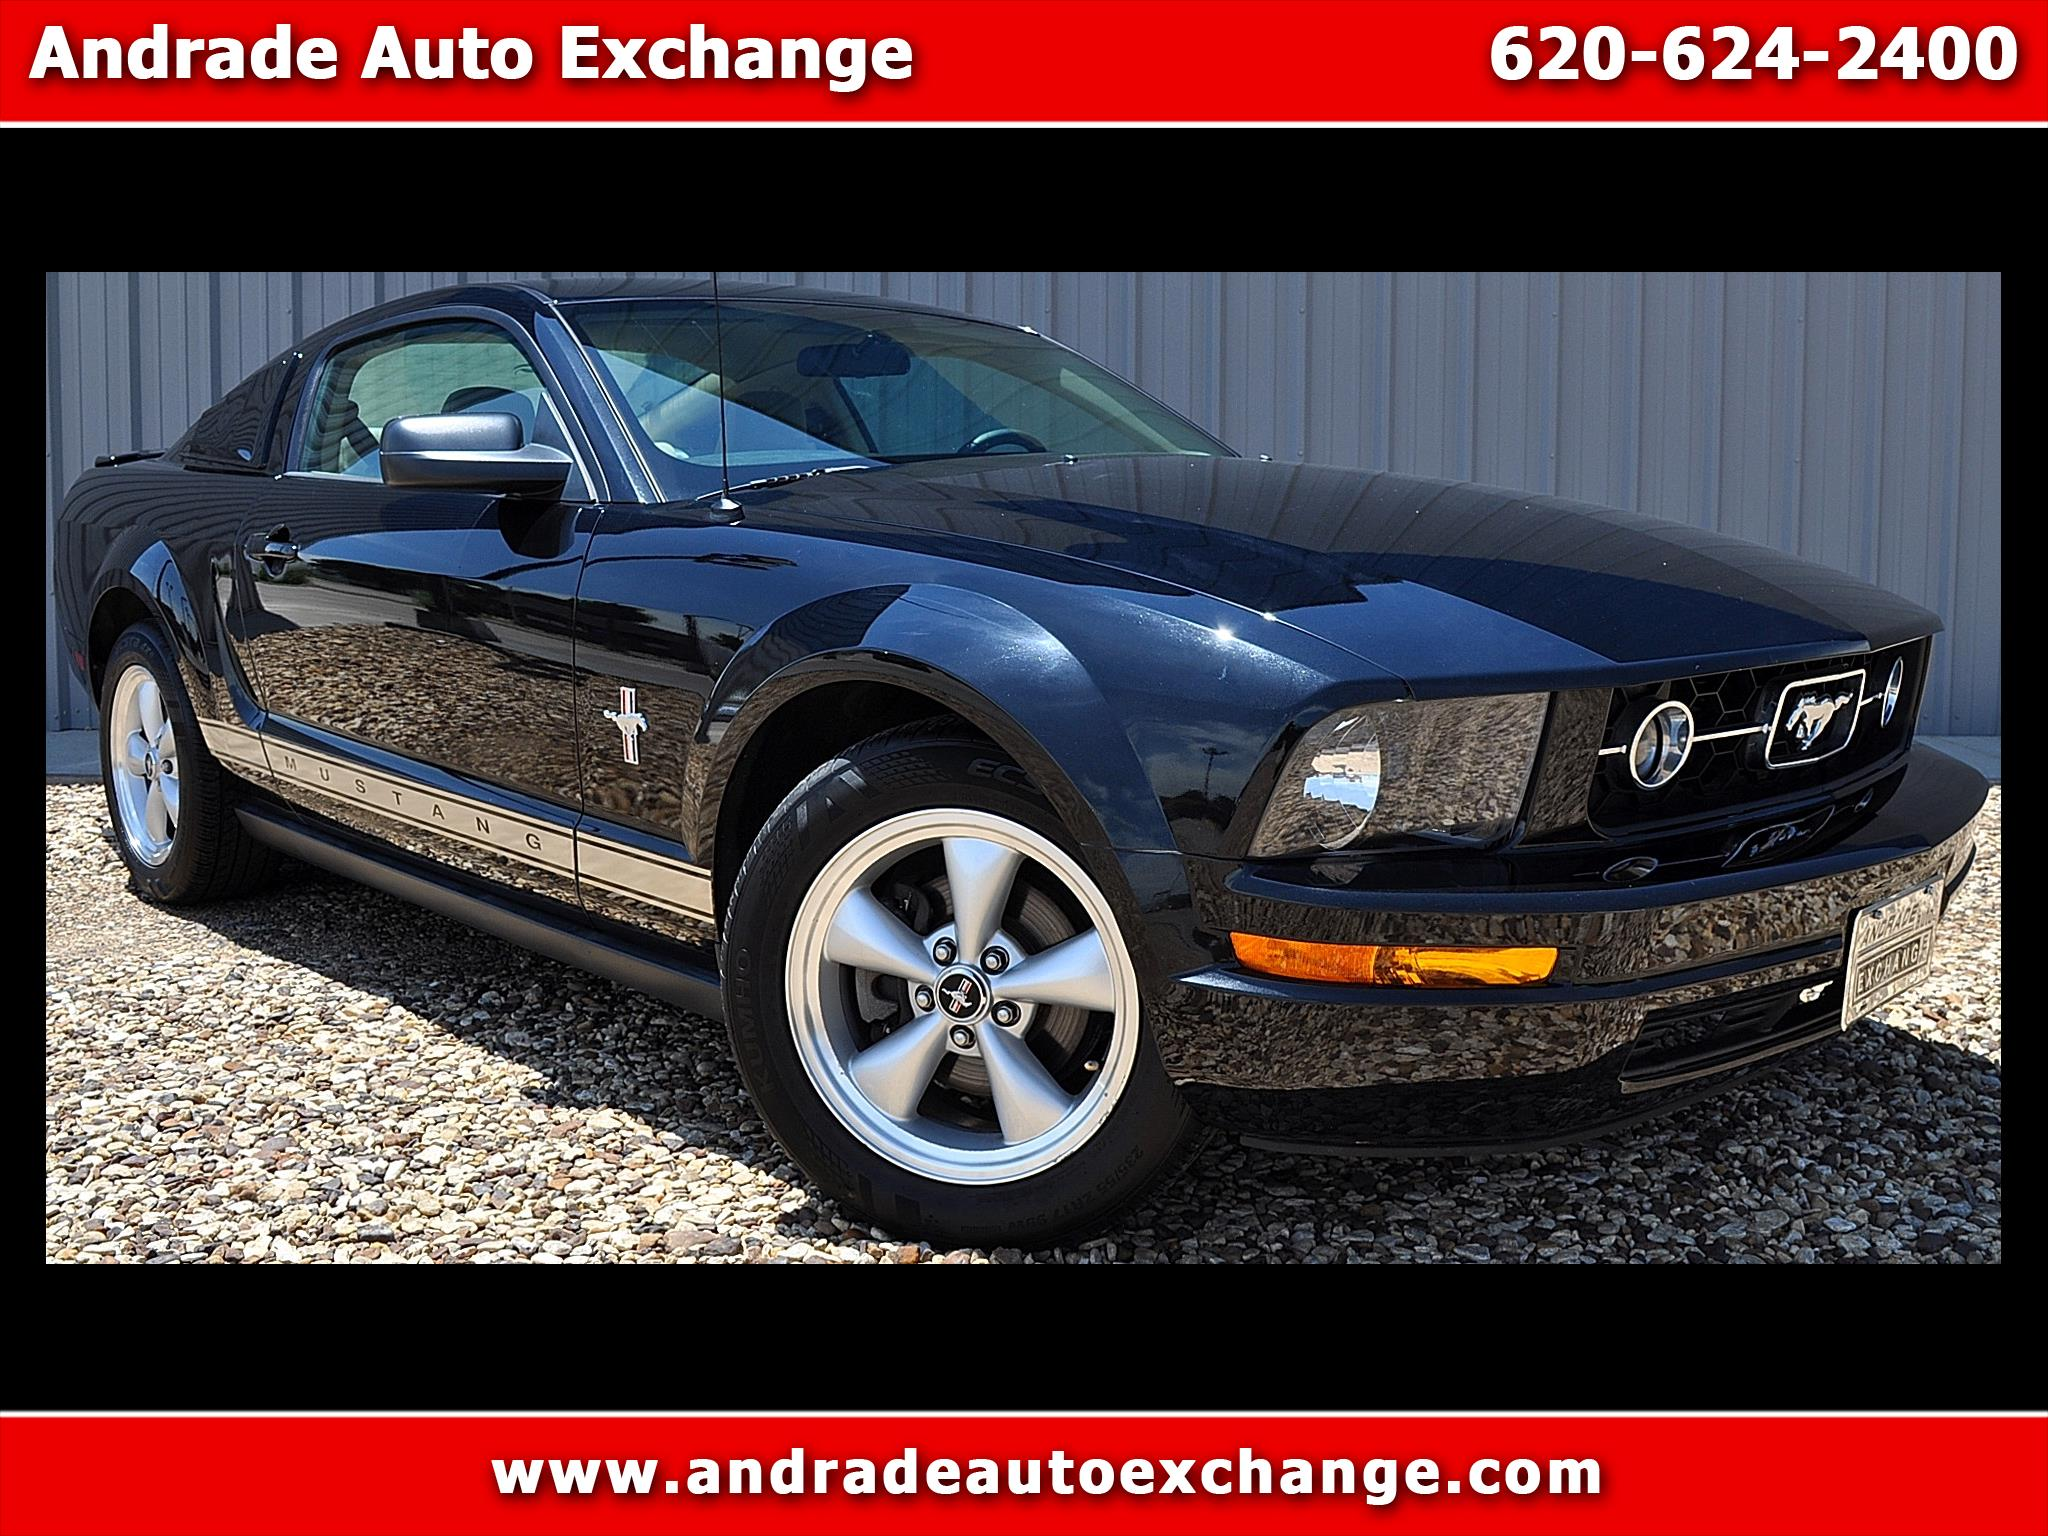 2008 Ford Mustang V6 Deluxe Coupe